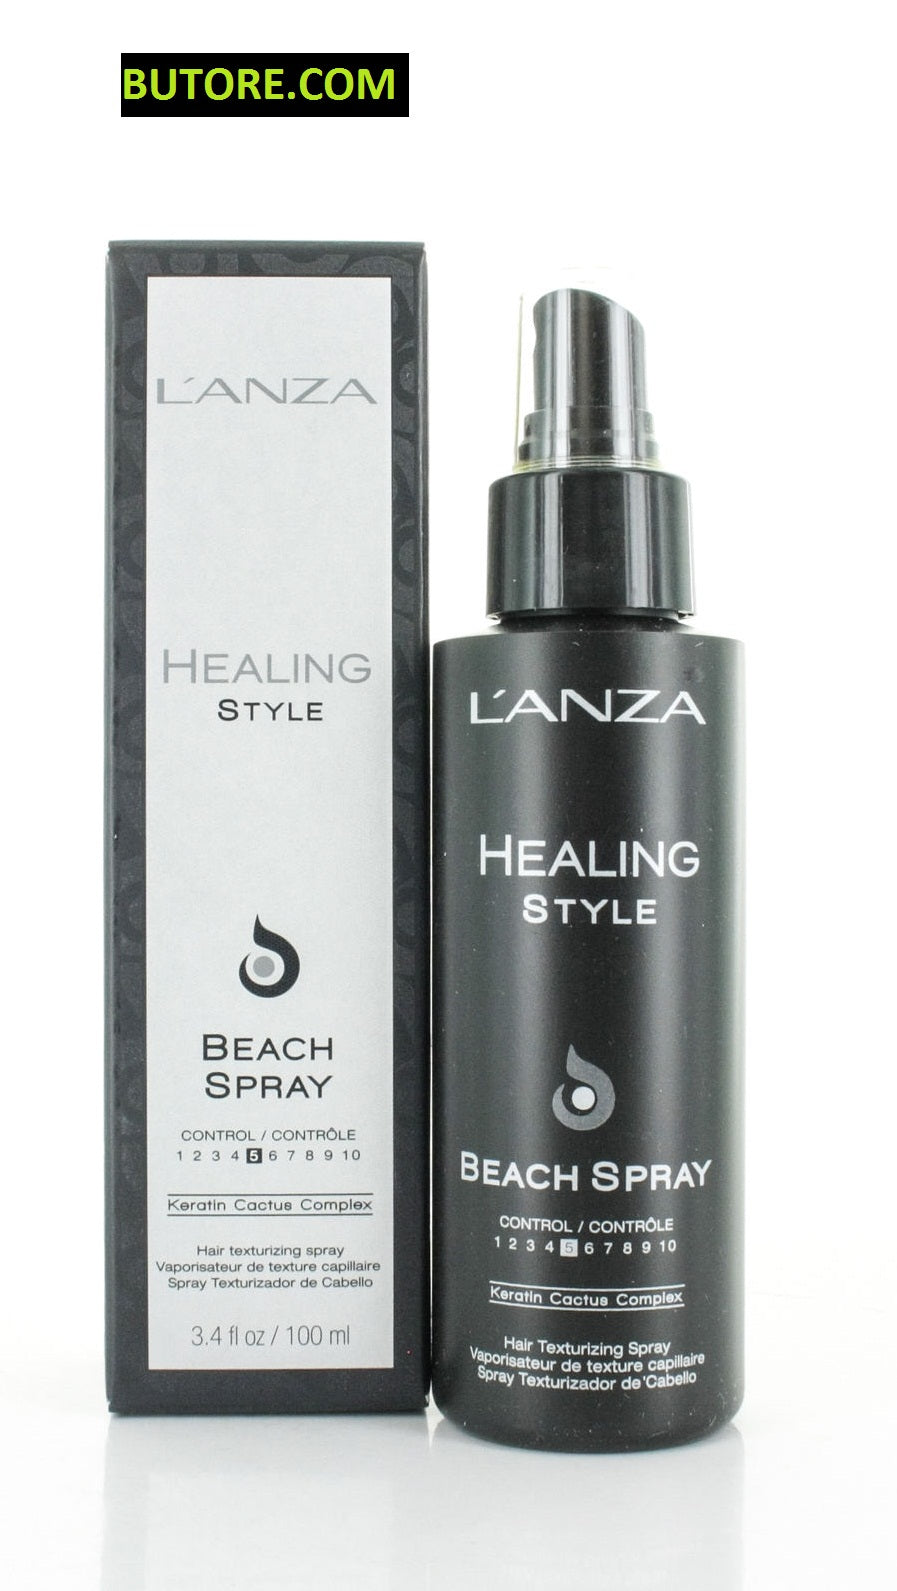 Lanza Healing Style Beach Spray 3.4oz